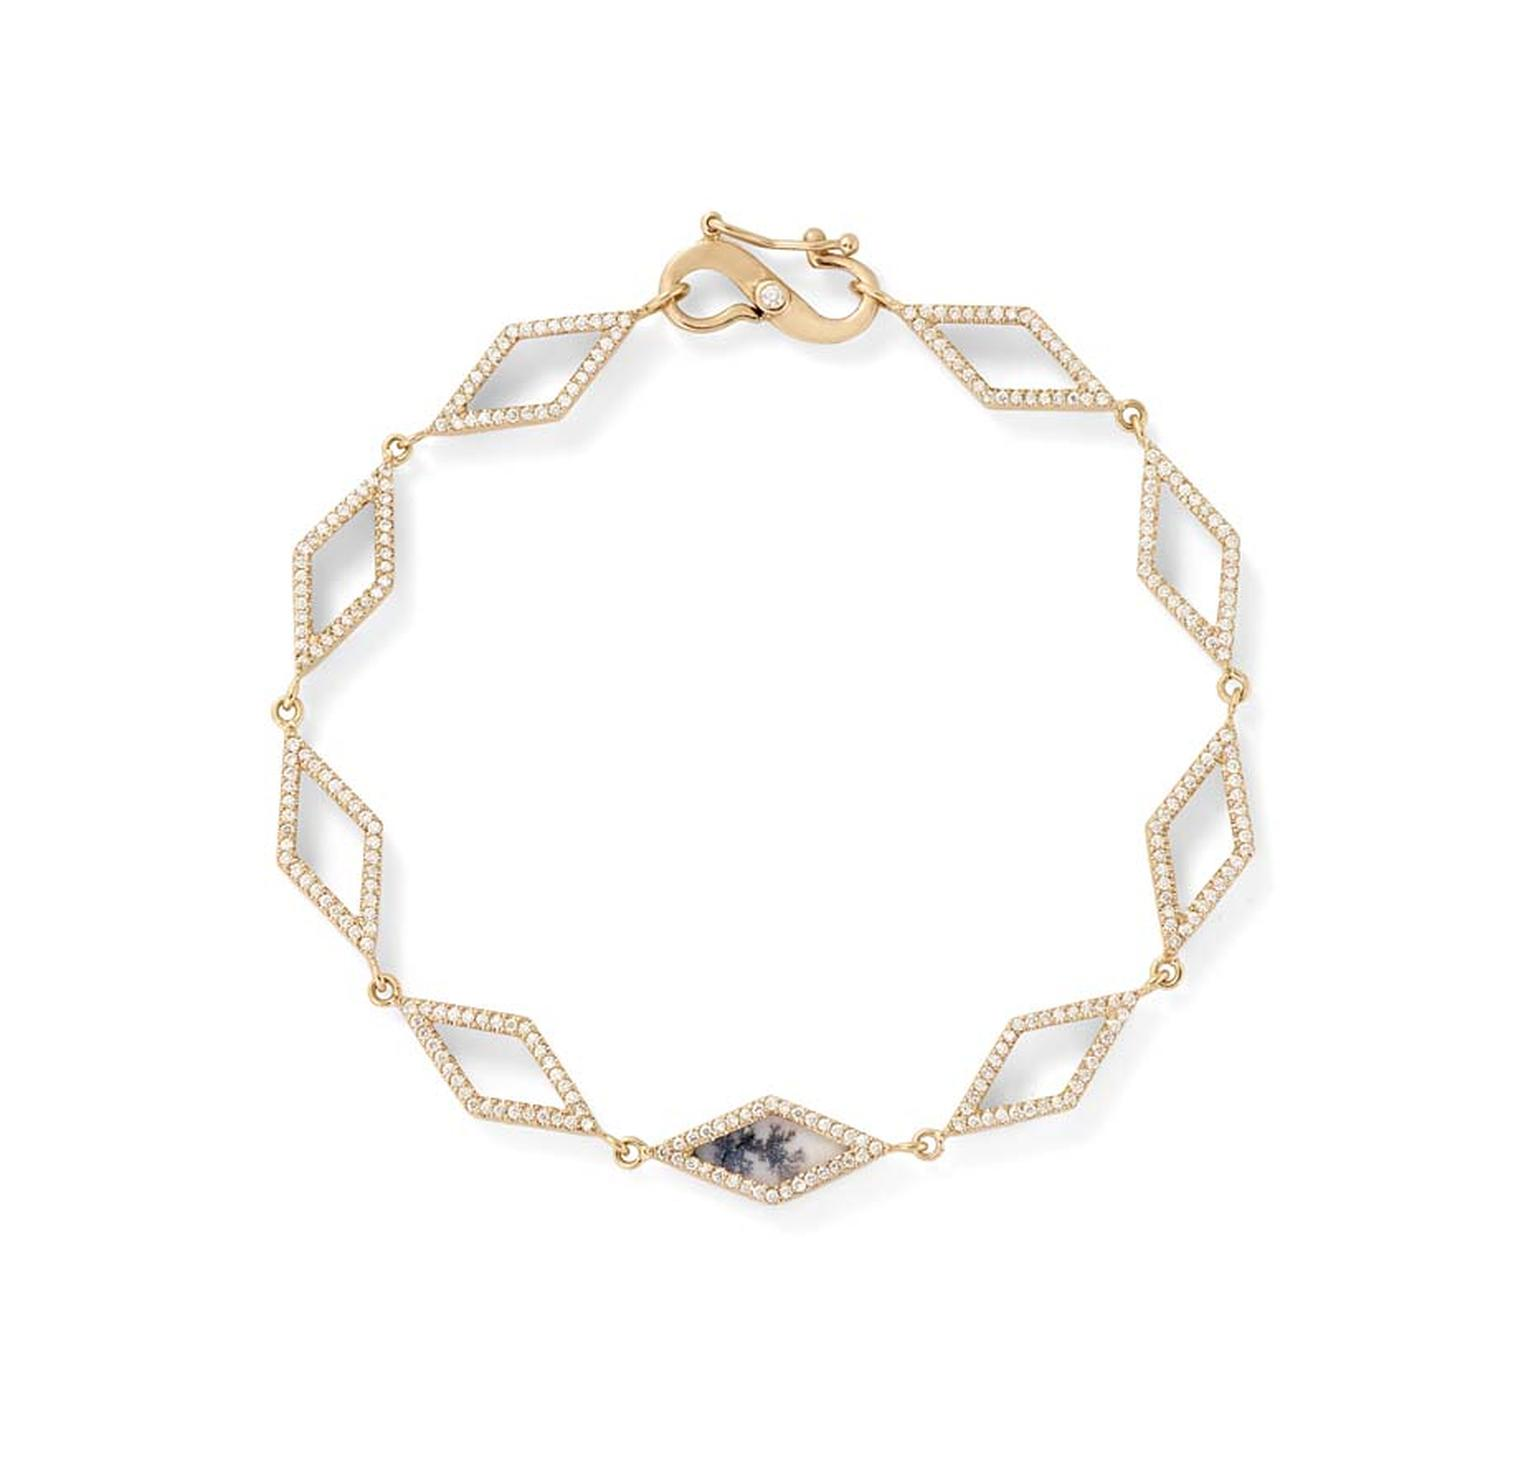 Monique Péan dendritic agate geometric open link bracelet with white diamond pavé, set in recycled rose gold.